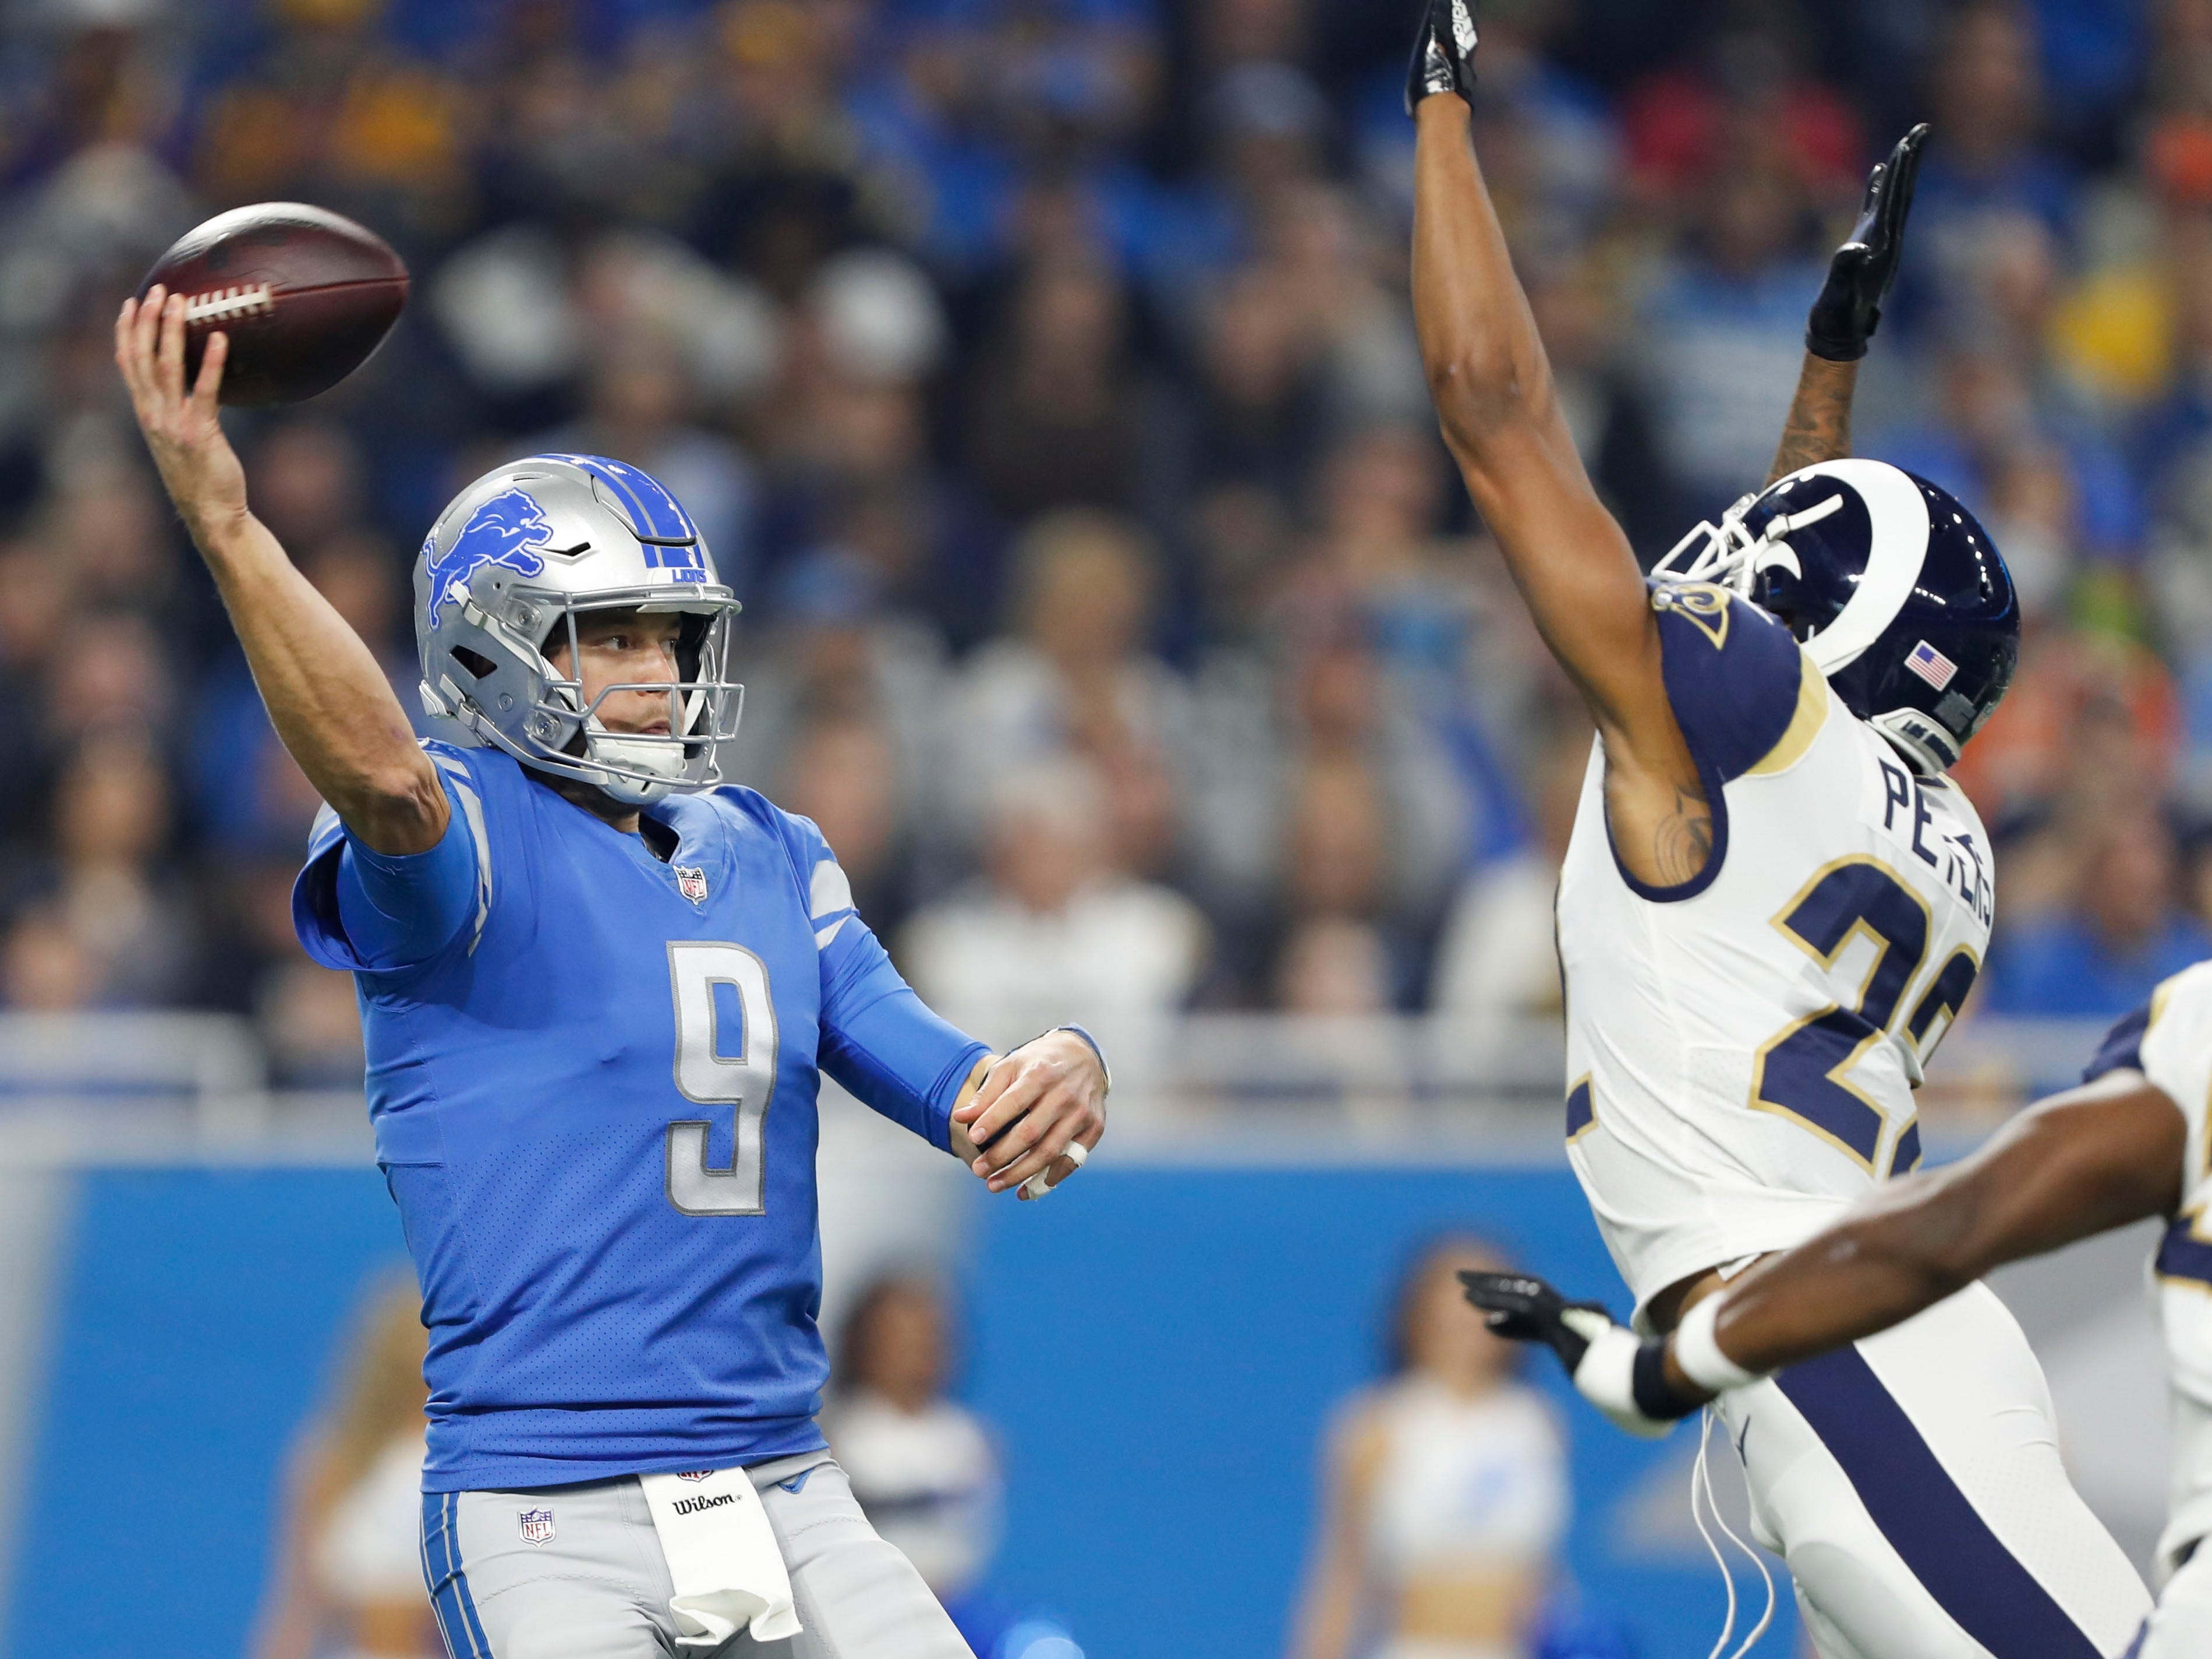 Detroit Lions quarterback Matthew Stafford (9) passes the ball against Los Angeles Rams cornerback Marcus Peters (22) during the first quarter at Ford Field.